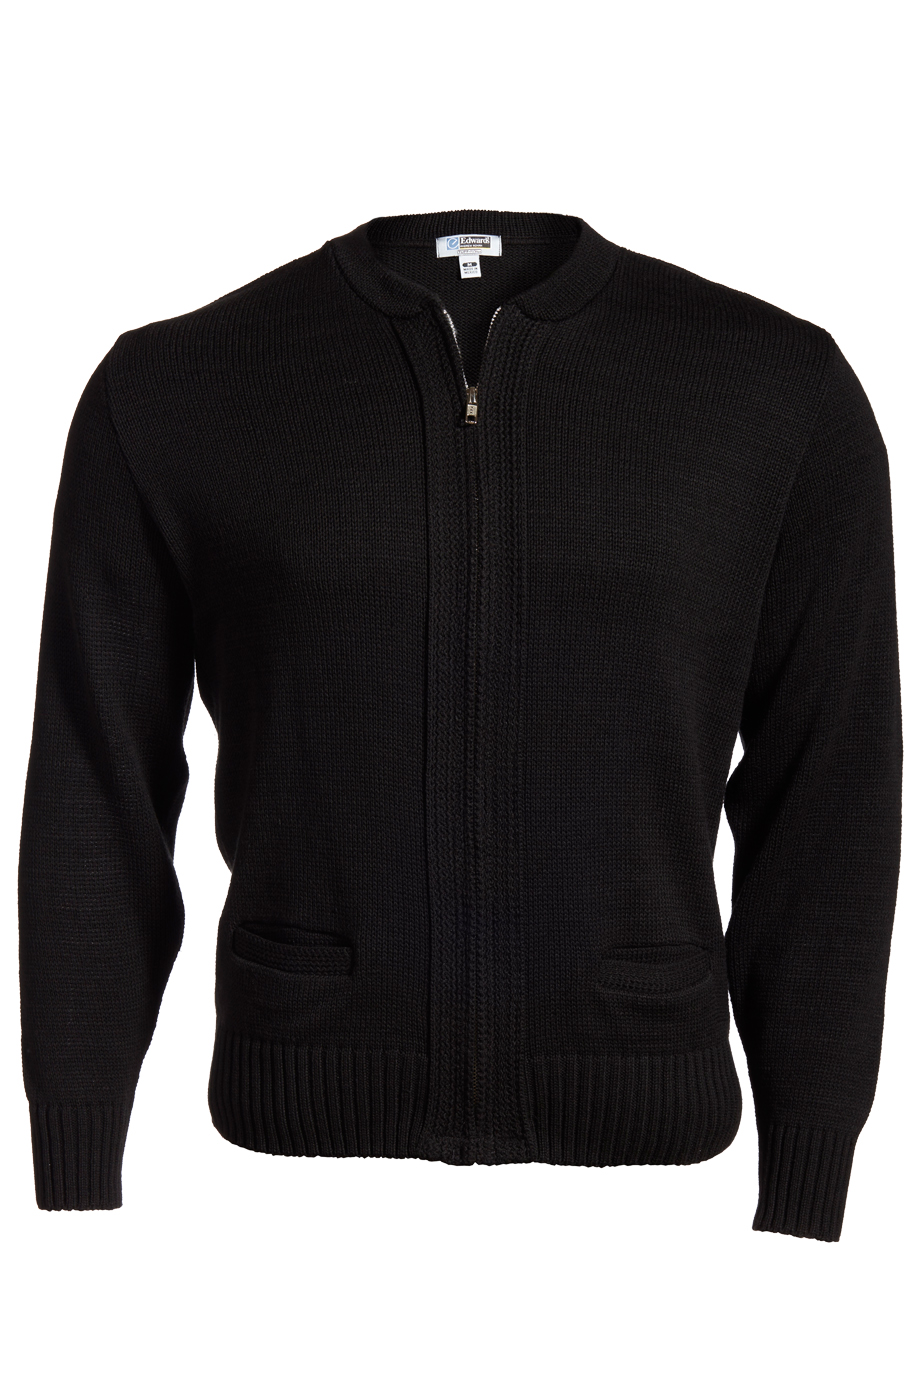 Full-Zip Heavyweight Acrylic Sweater 372